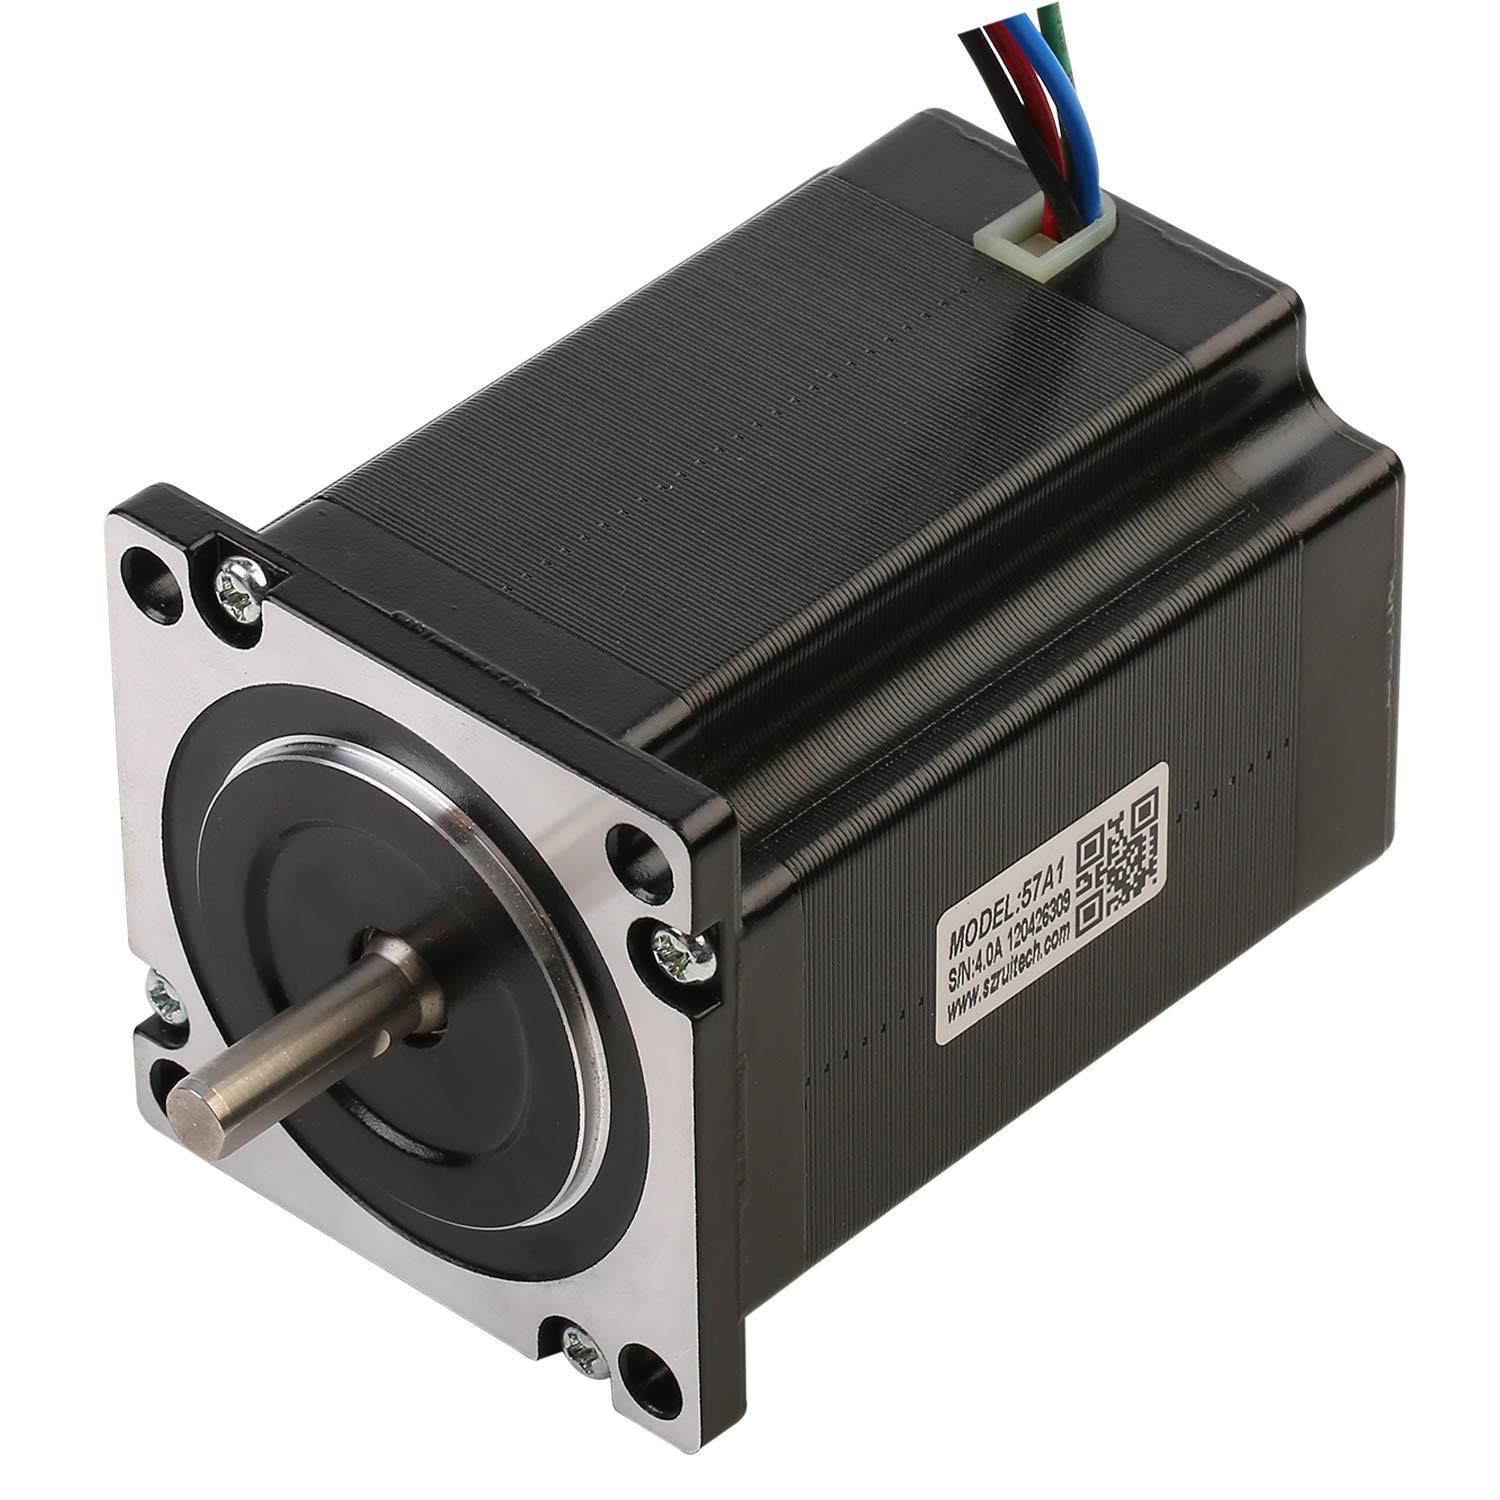 RTELLIGENT 57A1 Nema 23 Stepper Motor Stepping 1.3Nm/184.14oz-in 6.35mm Shaft 4-Wire 2.8A 1.8Deg Low Noise for Laser/CNC Machine